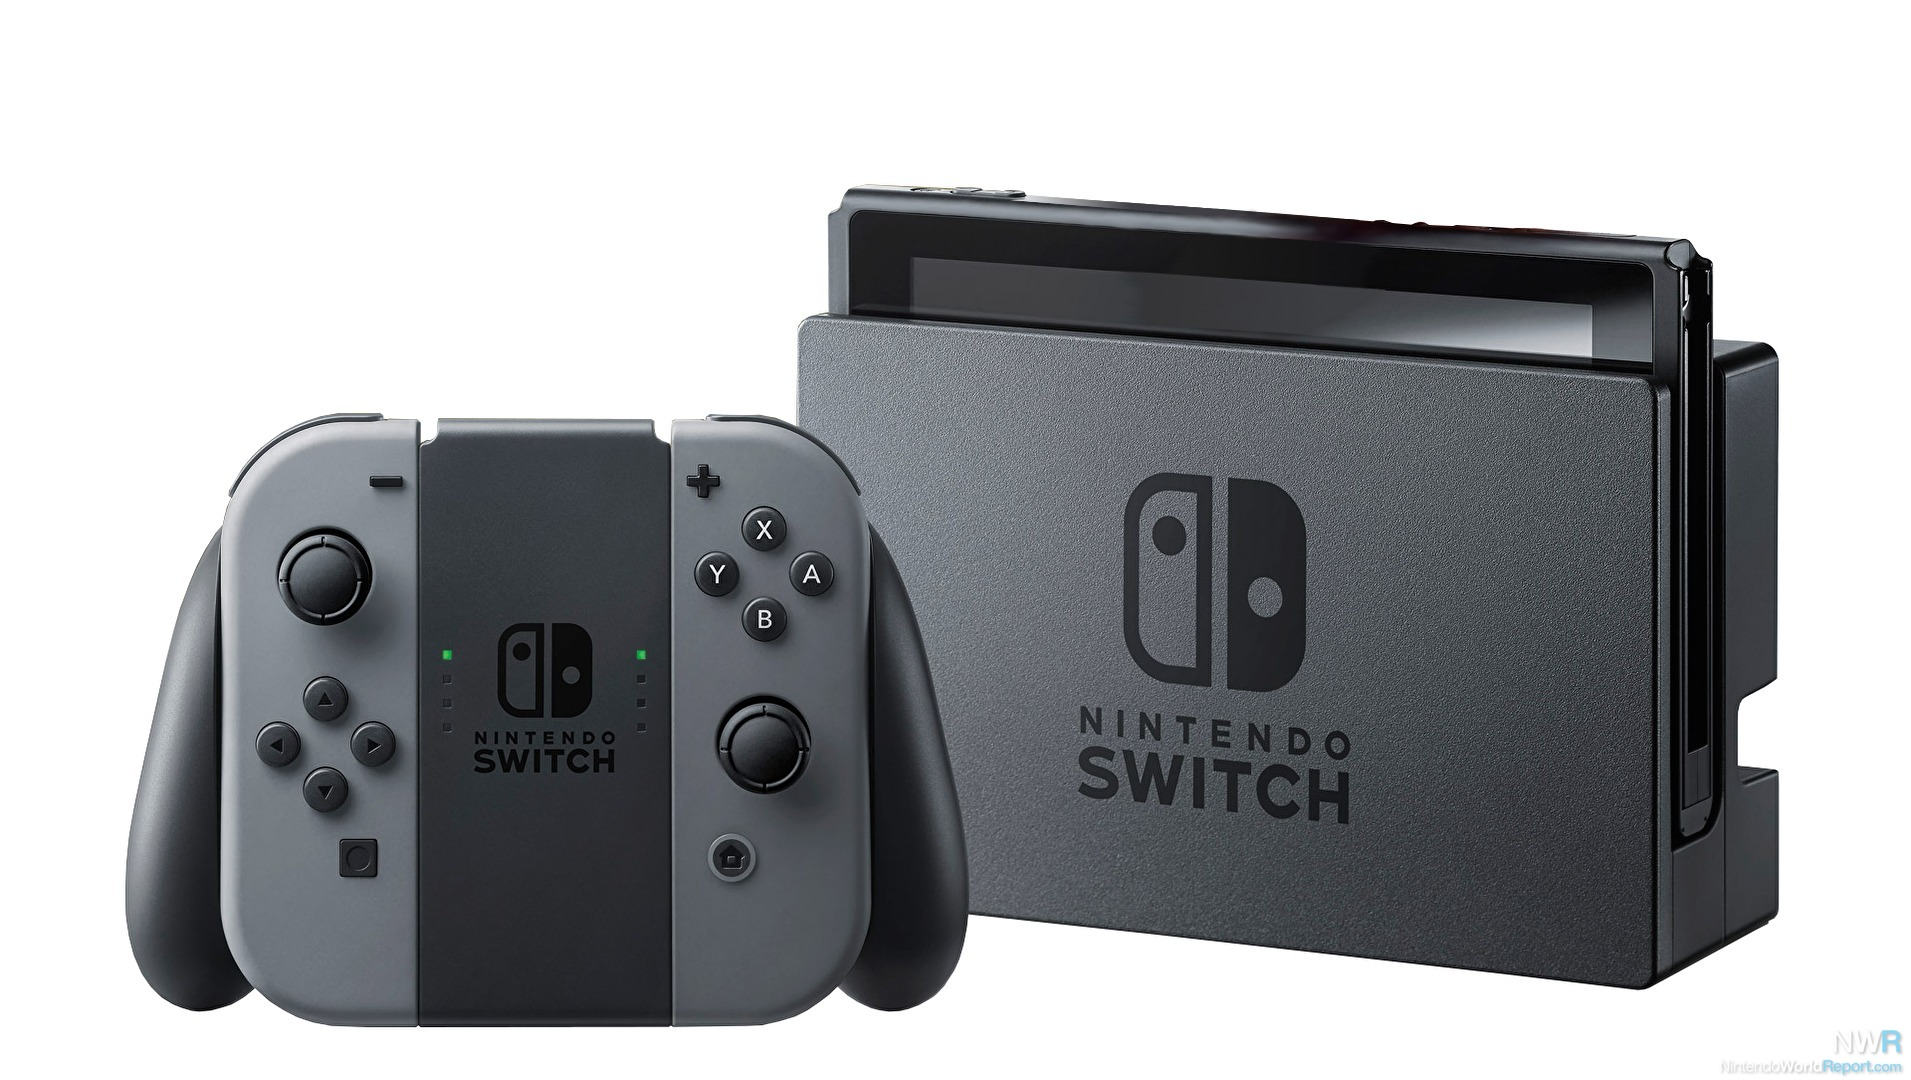 Nintendo's Switch now has more lifetime sales than the GameCube